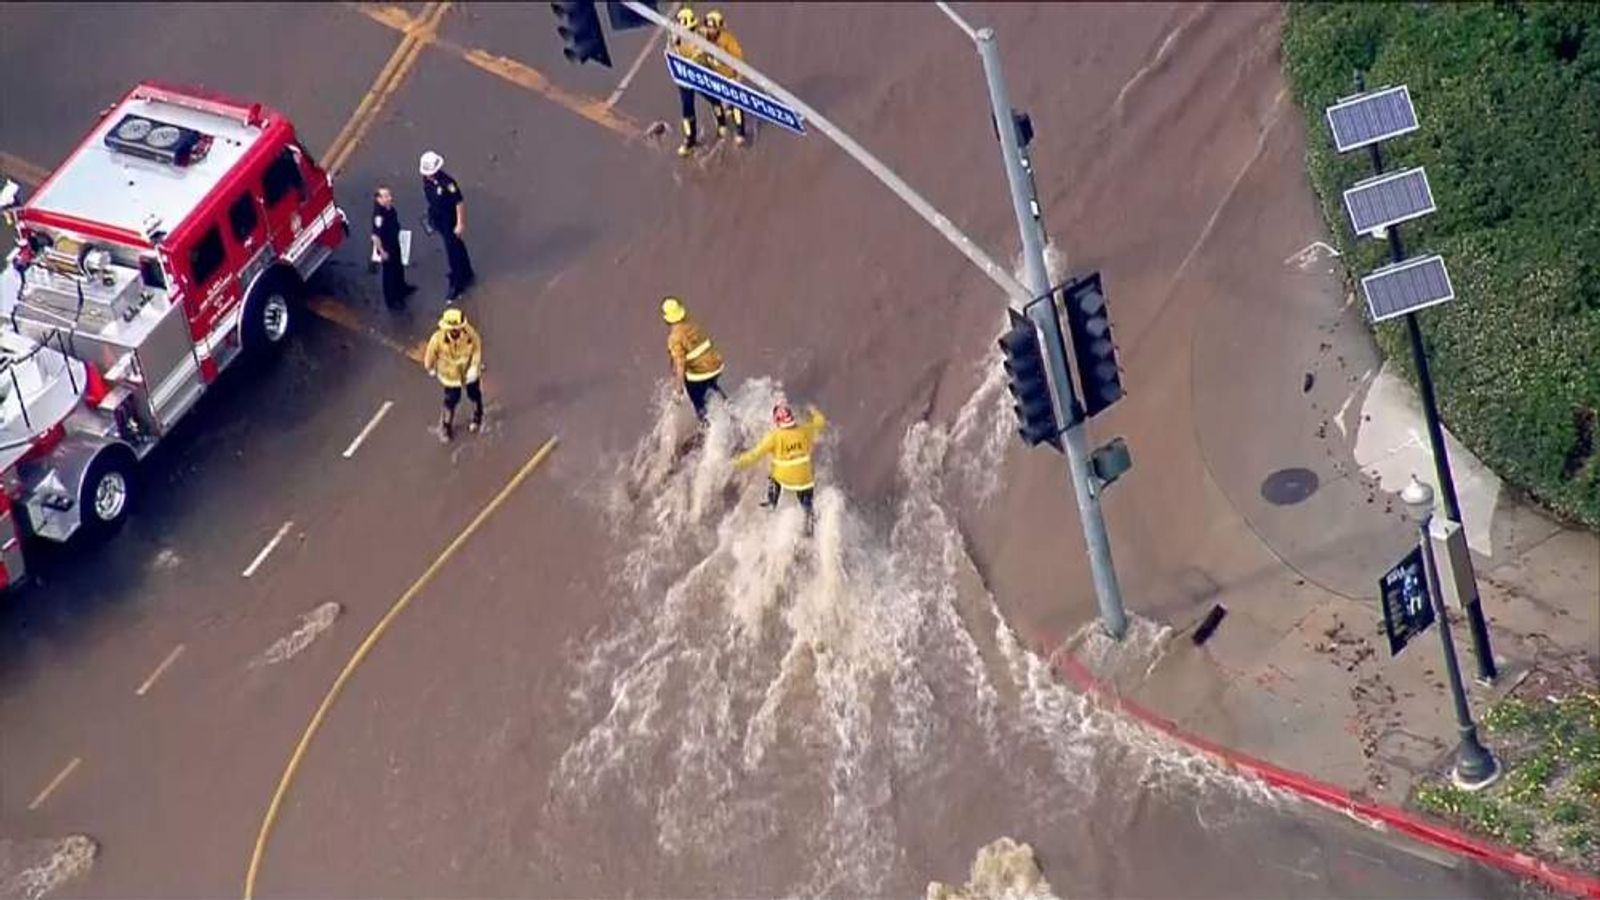 Firefighters struggle to stay upright amid the deluge